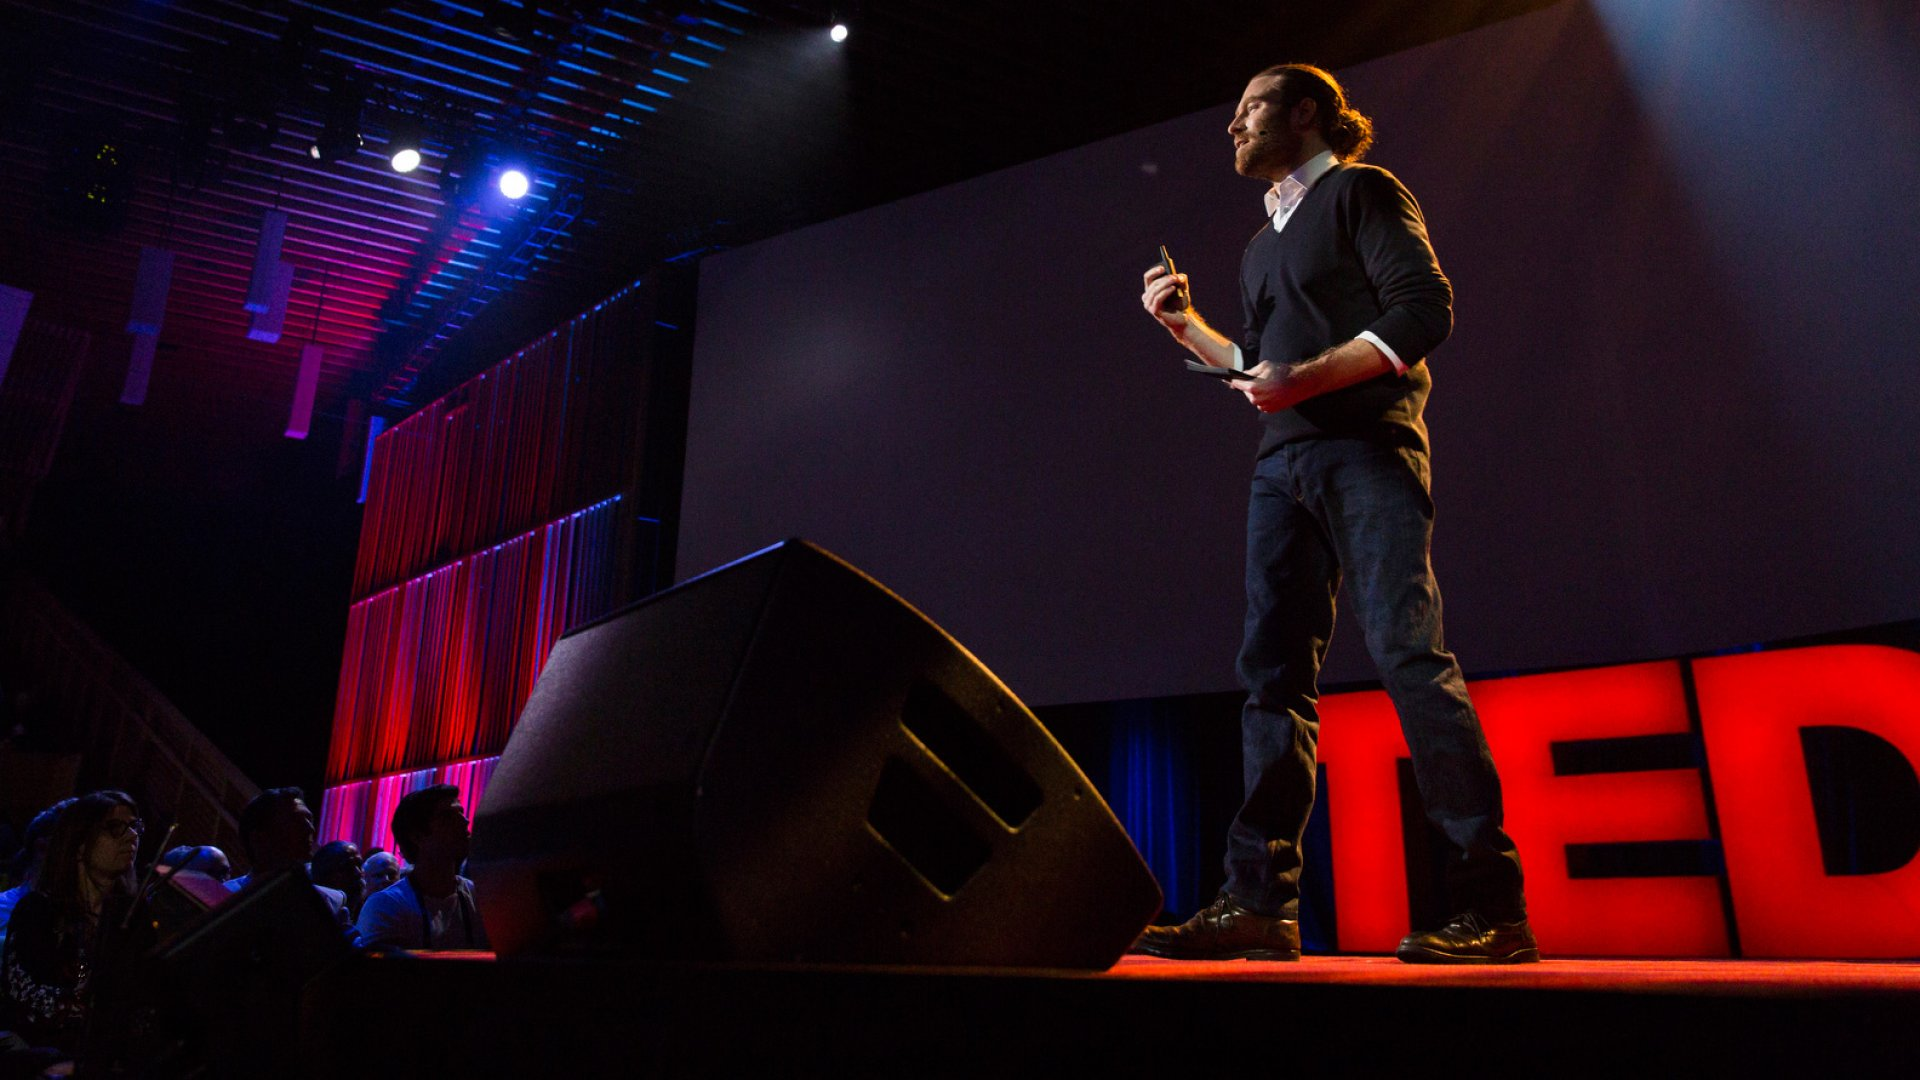 Chris Milk speaks at TED2016 - Dream, February 15-19, 2016, Vancouver Convention Center, Vancouver, Canada.